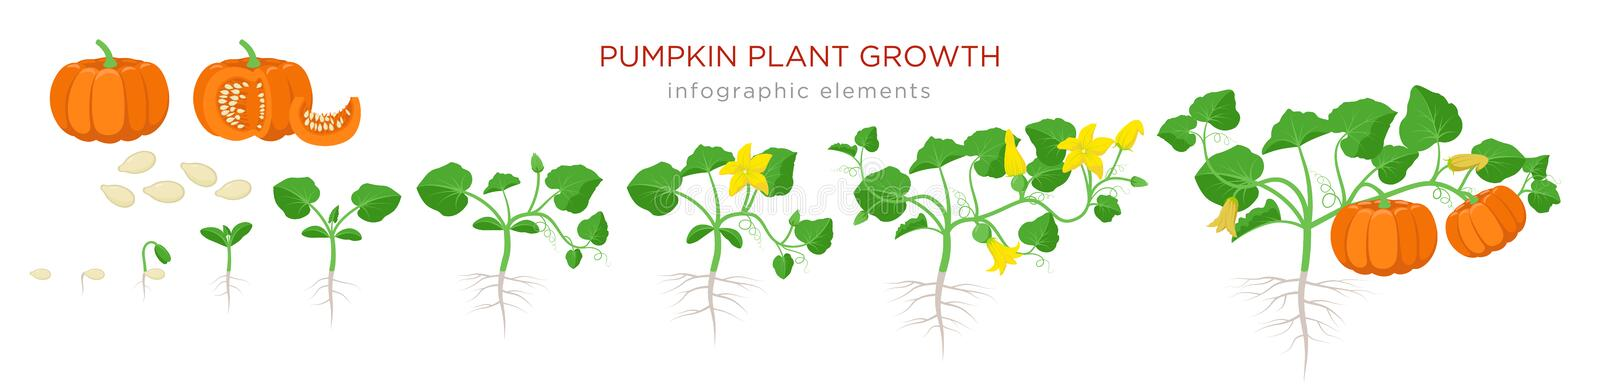 Pumpkin plant growth stages infographic elements in flat design. Planting process of Cucurbita from seeds, sprout to stock illustration